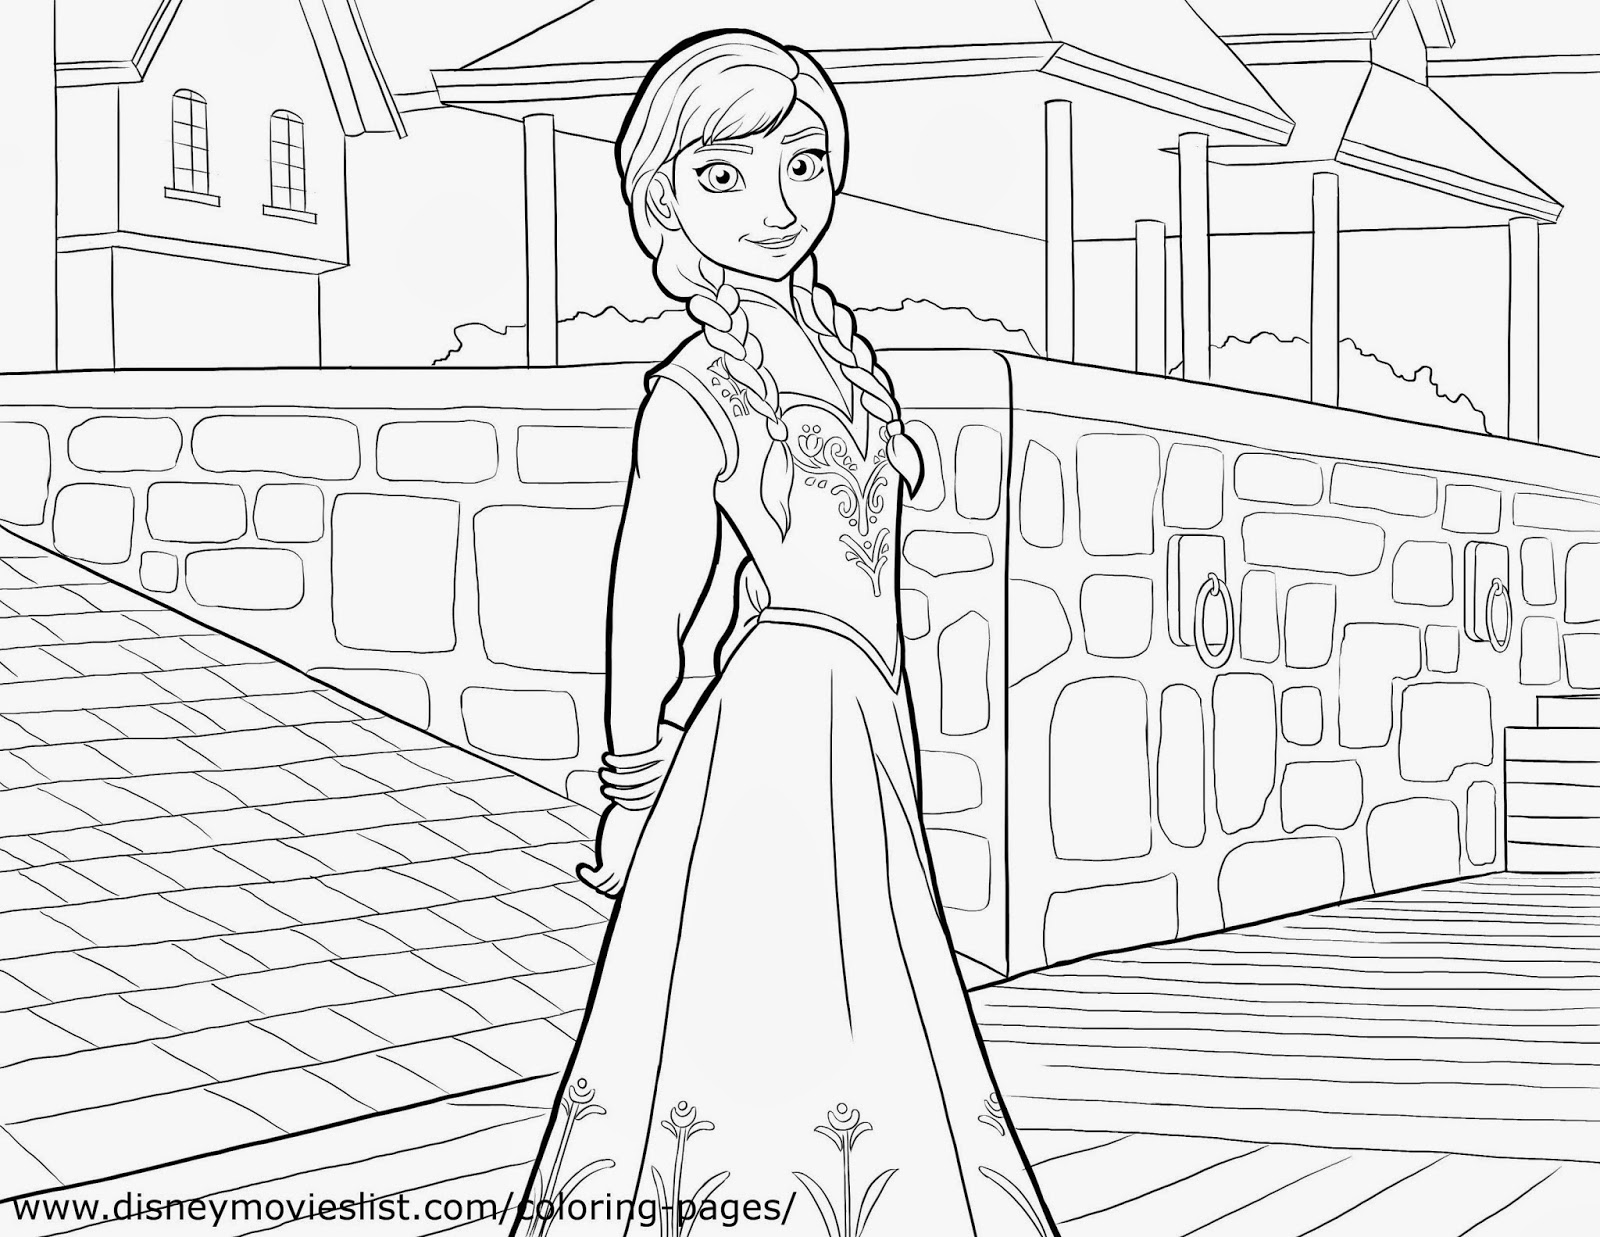 Frozen: Ana Free Coloring Pages. | Oh My Fiesta! in english